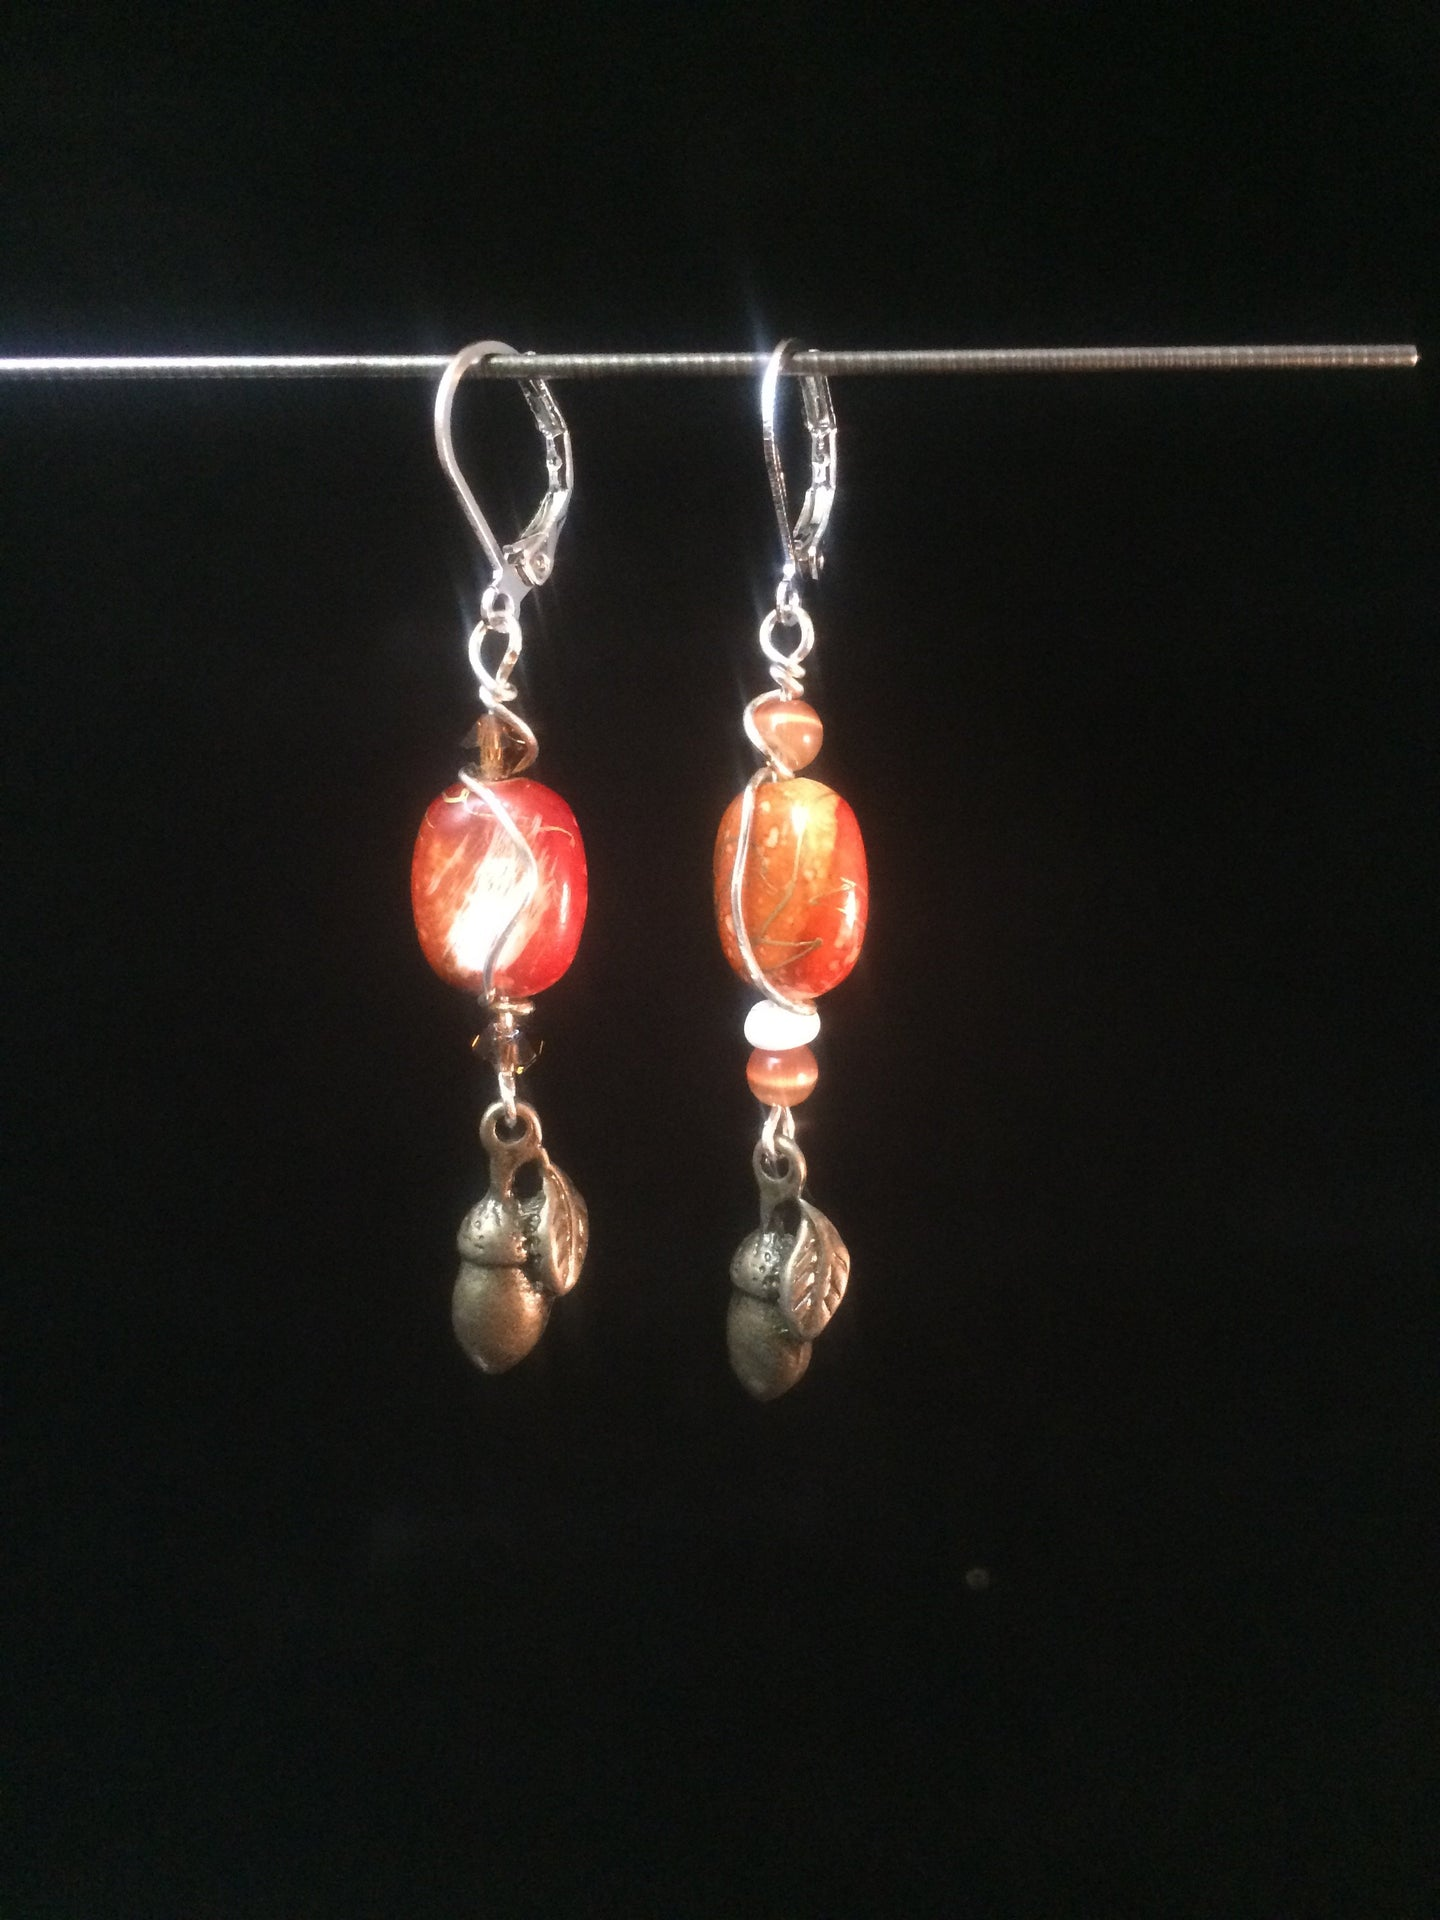 Leverback earrings made from glass beads and metal acorn charms.